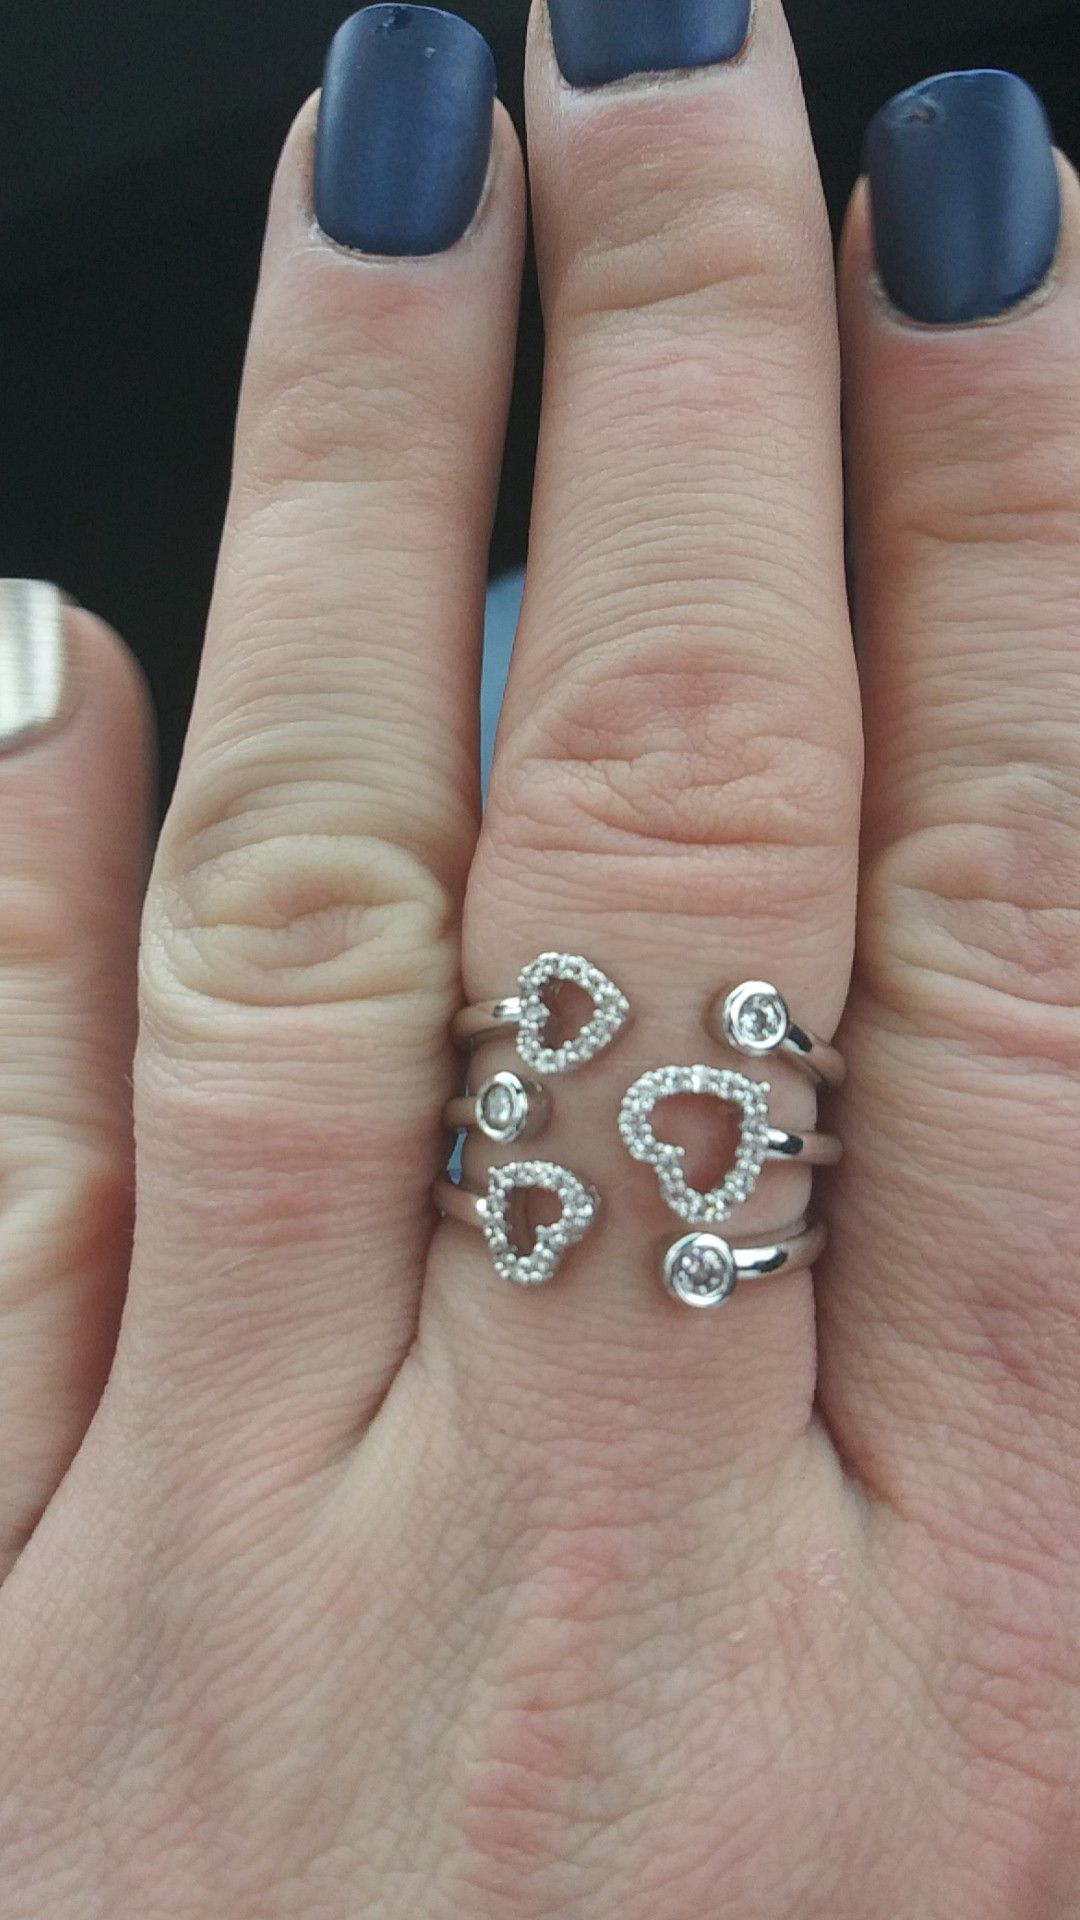 Size 9 silver ring